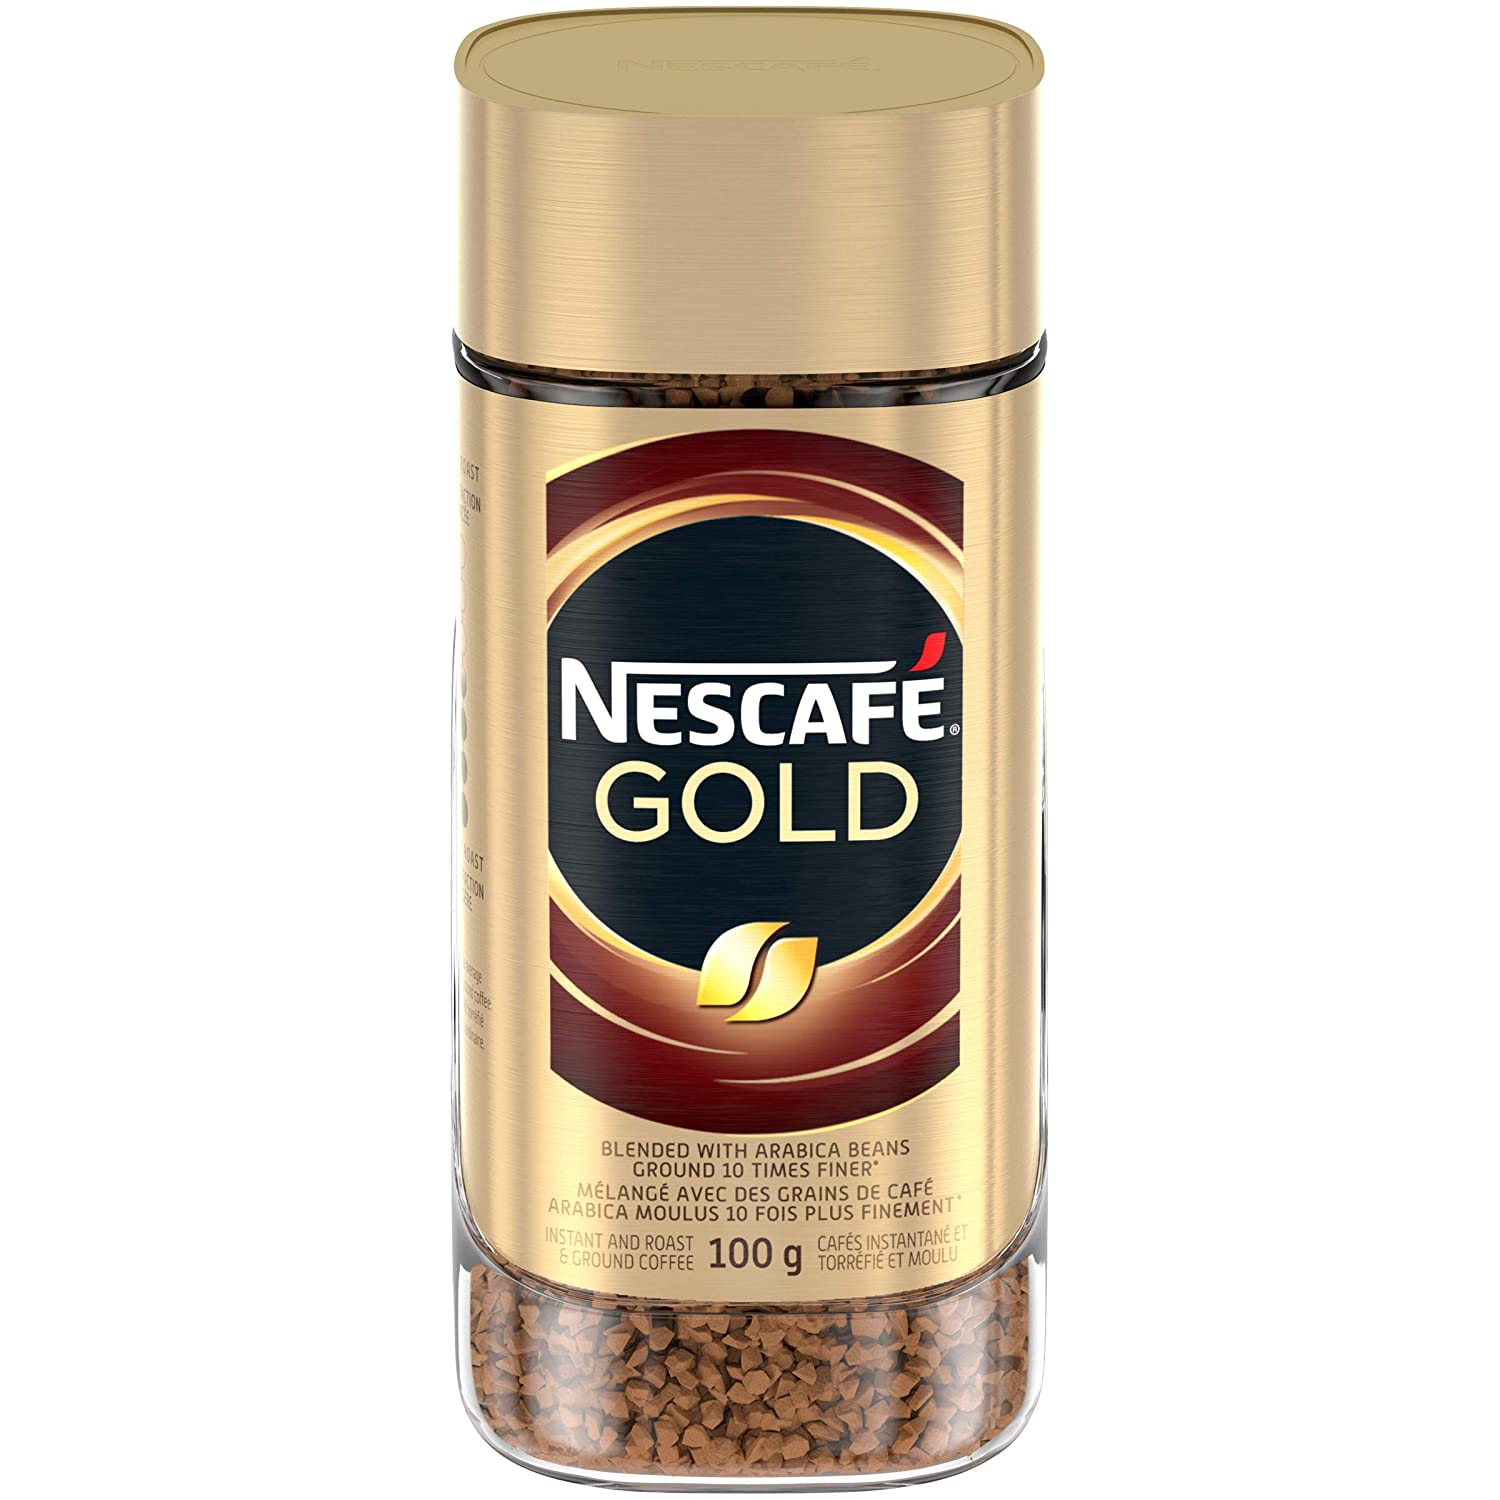 aga>Nescafe Instant Coffee Gold 100g